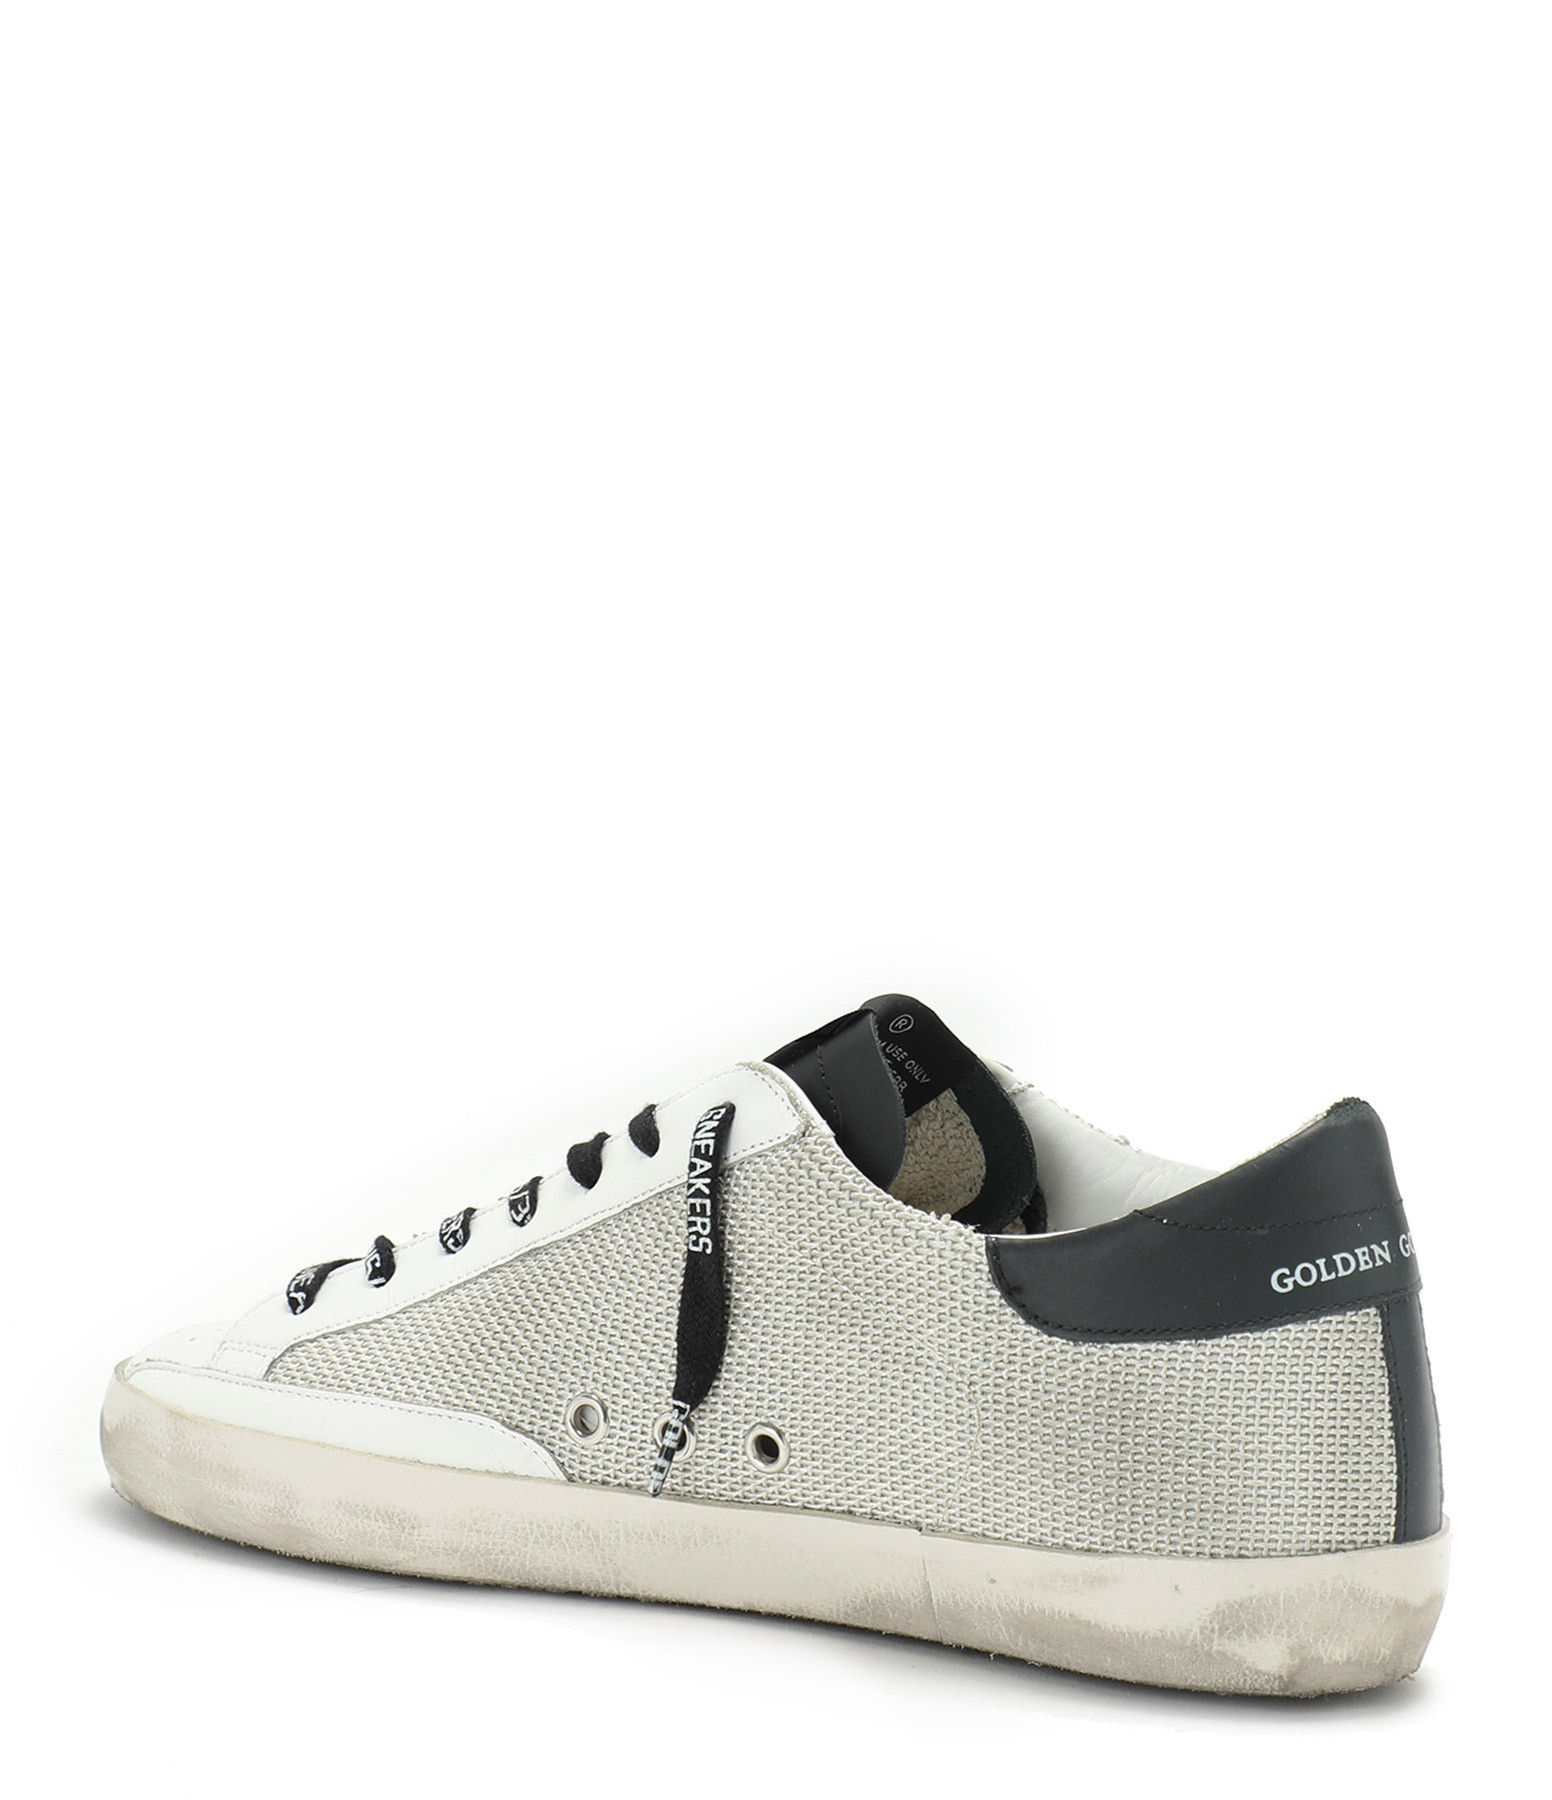 GOLDEN GOOSE - Baskets Homme Superstar Cuir Suédé Jaune Noir